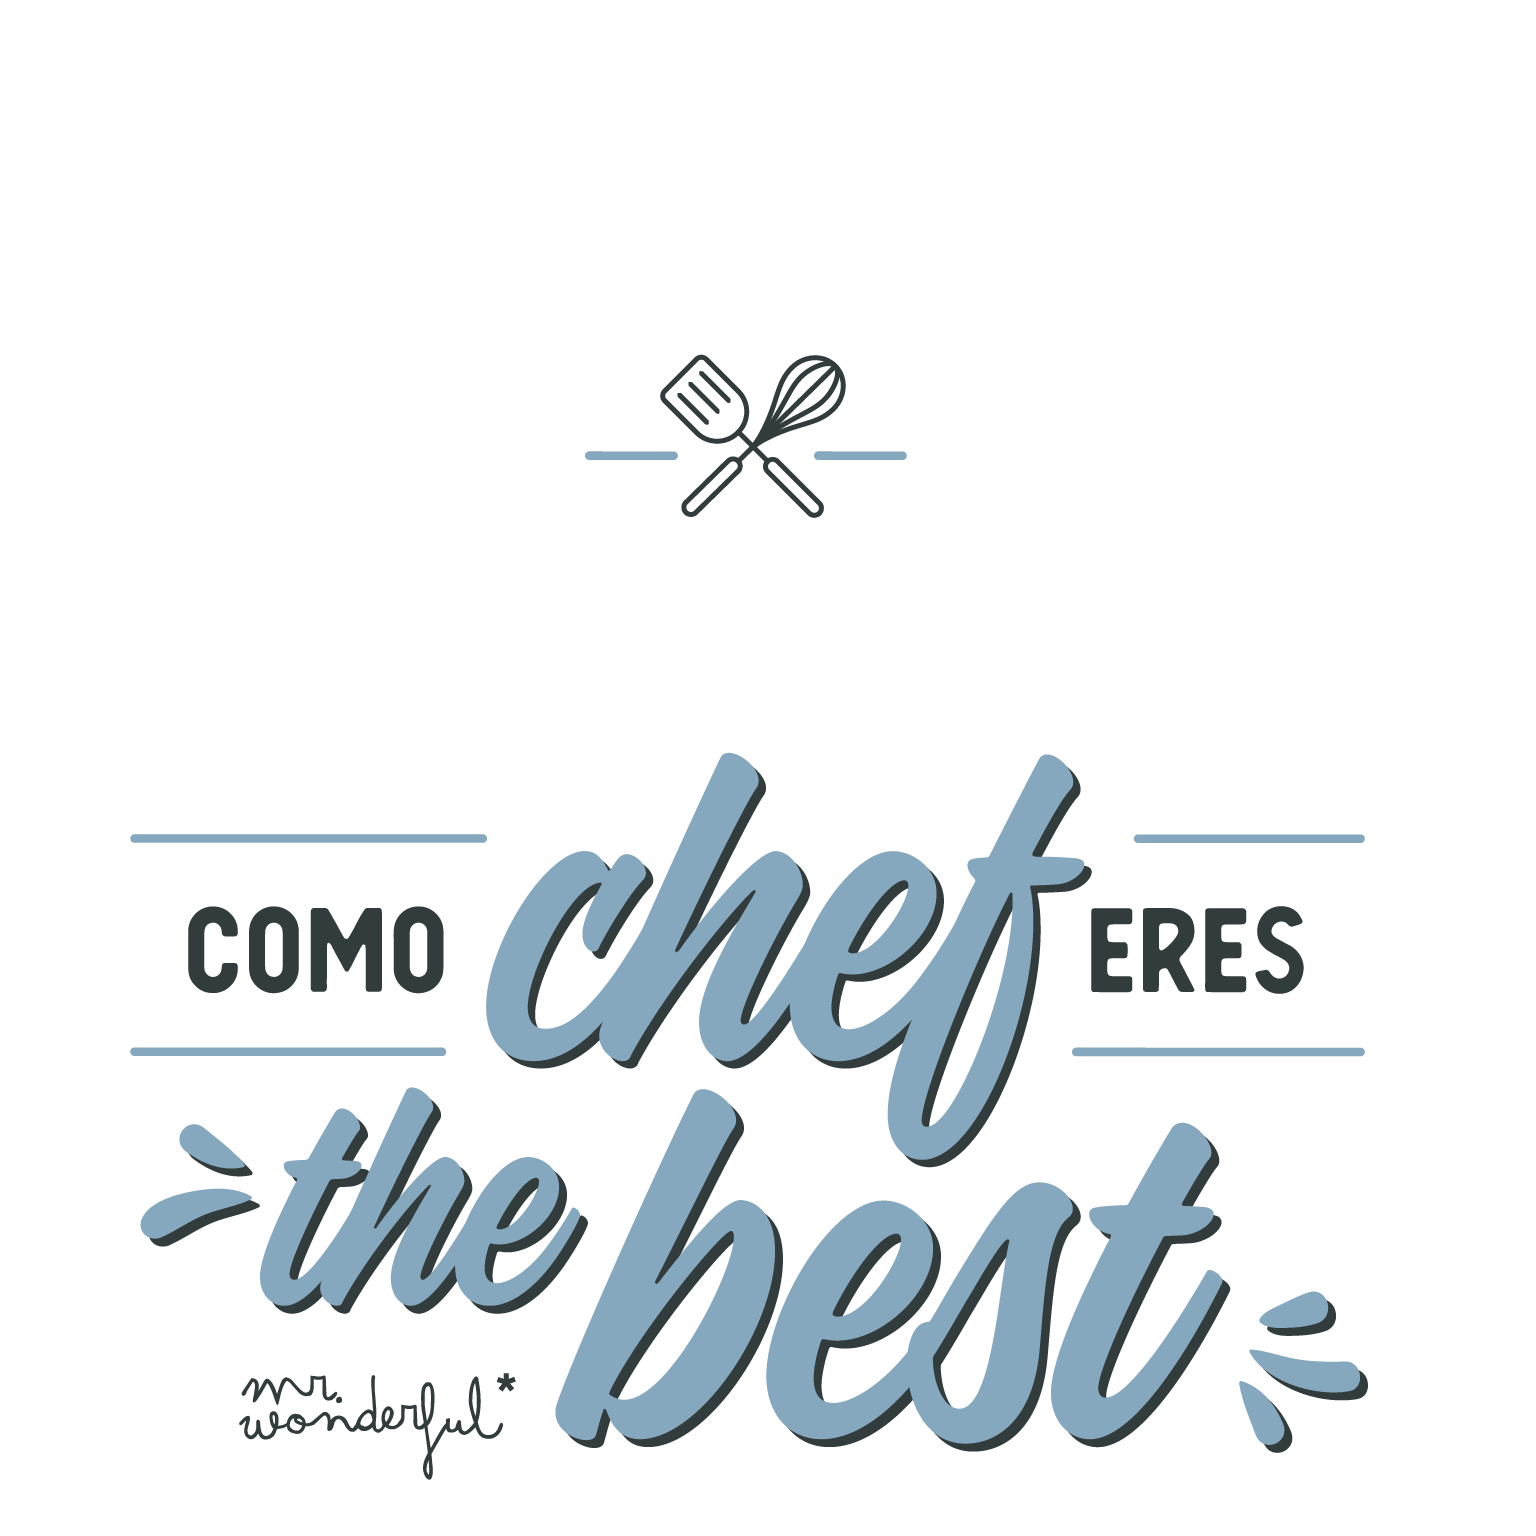 Como chef eres the best